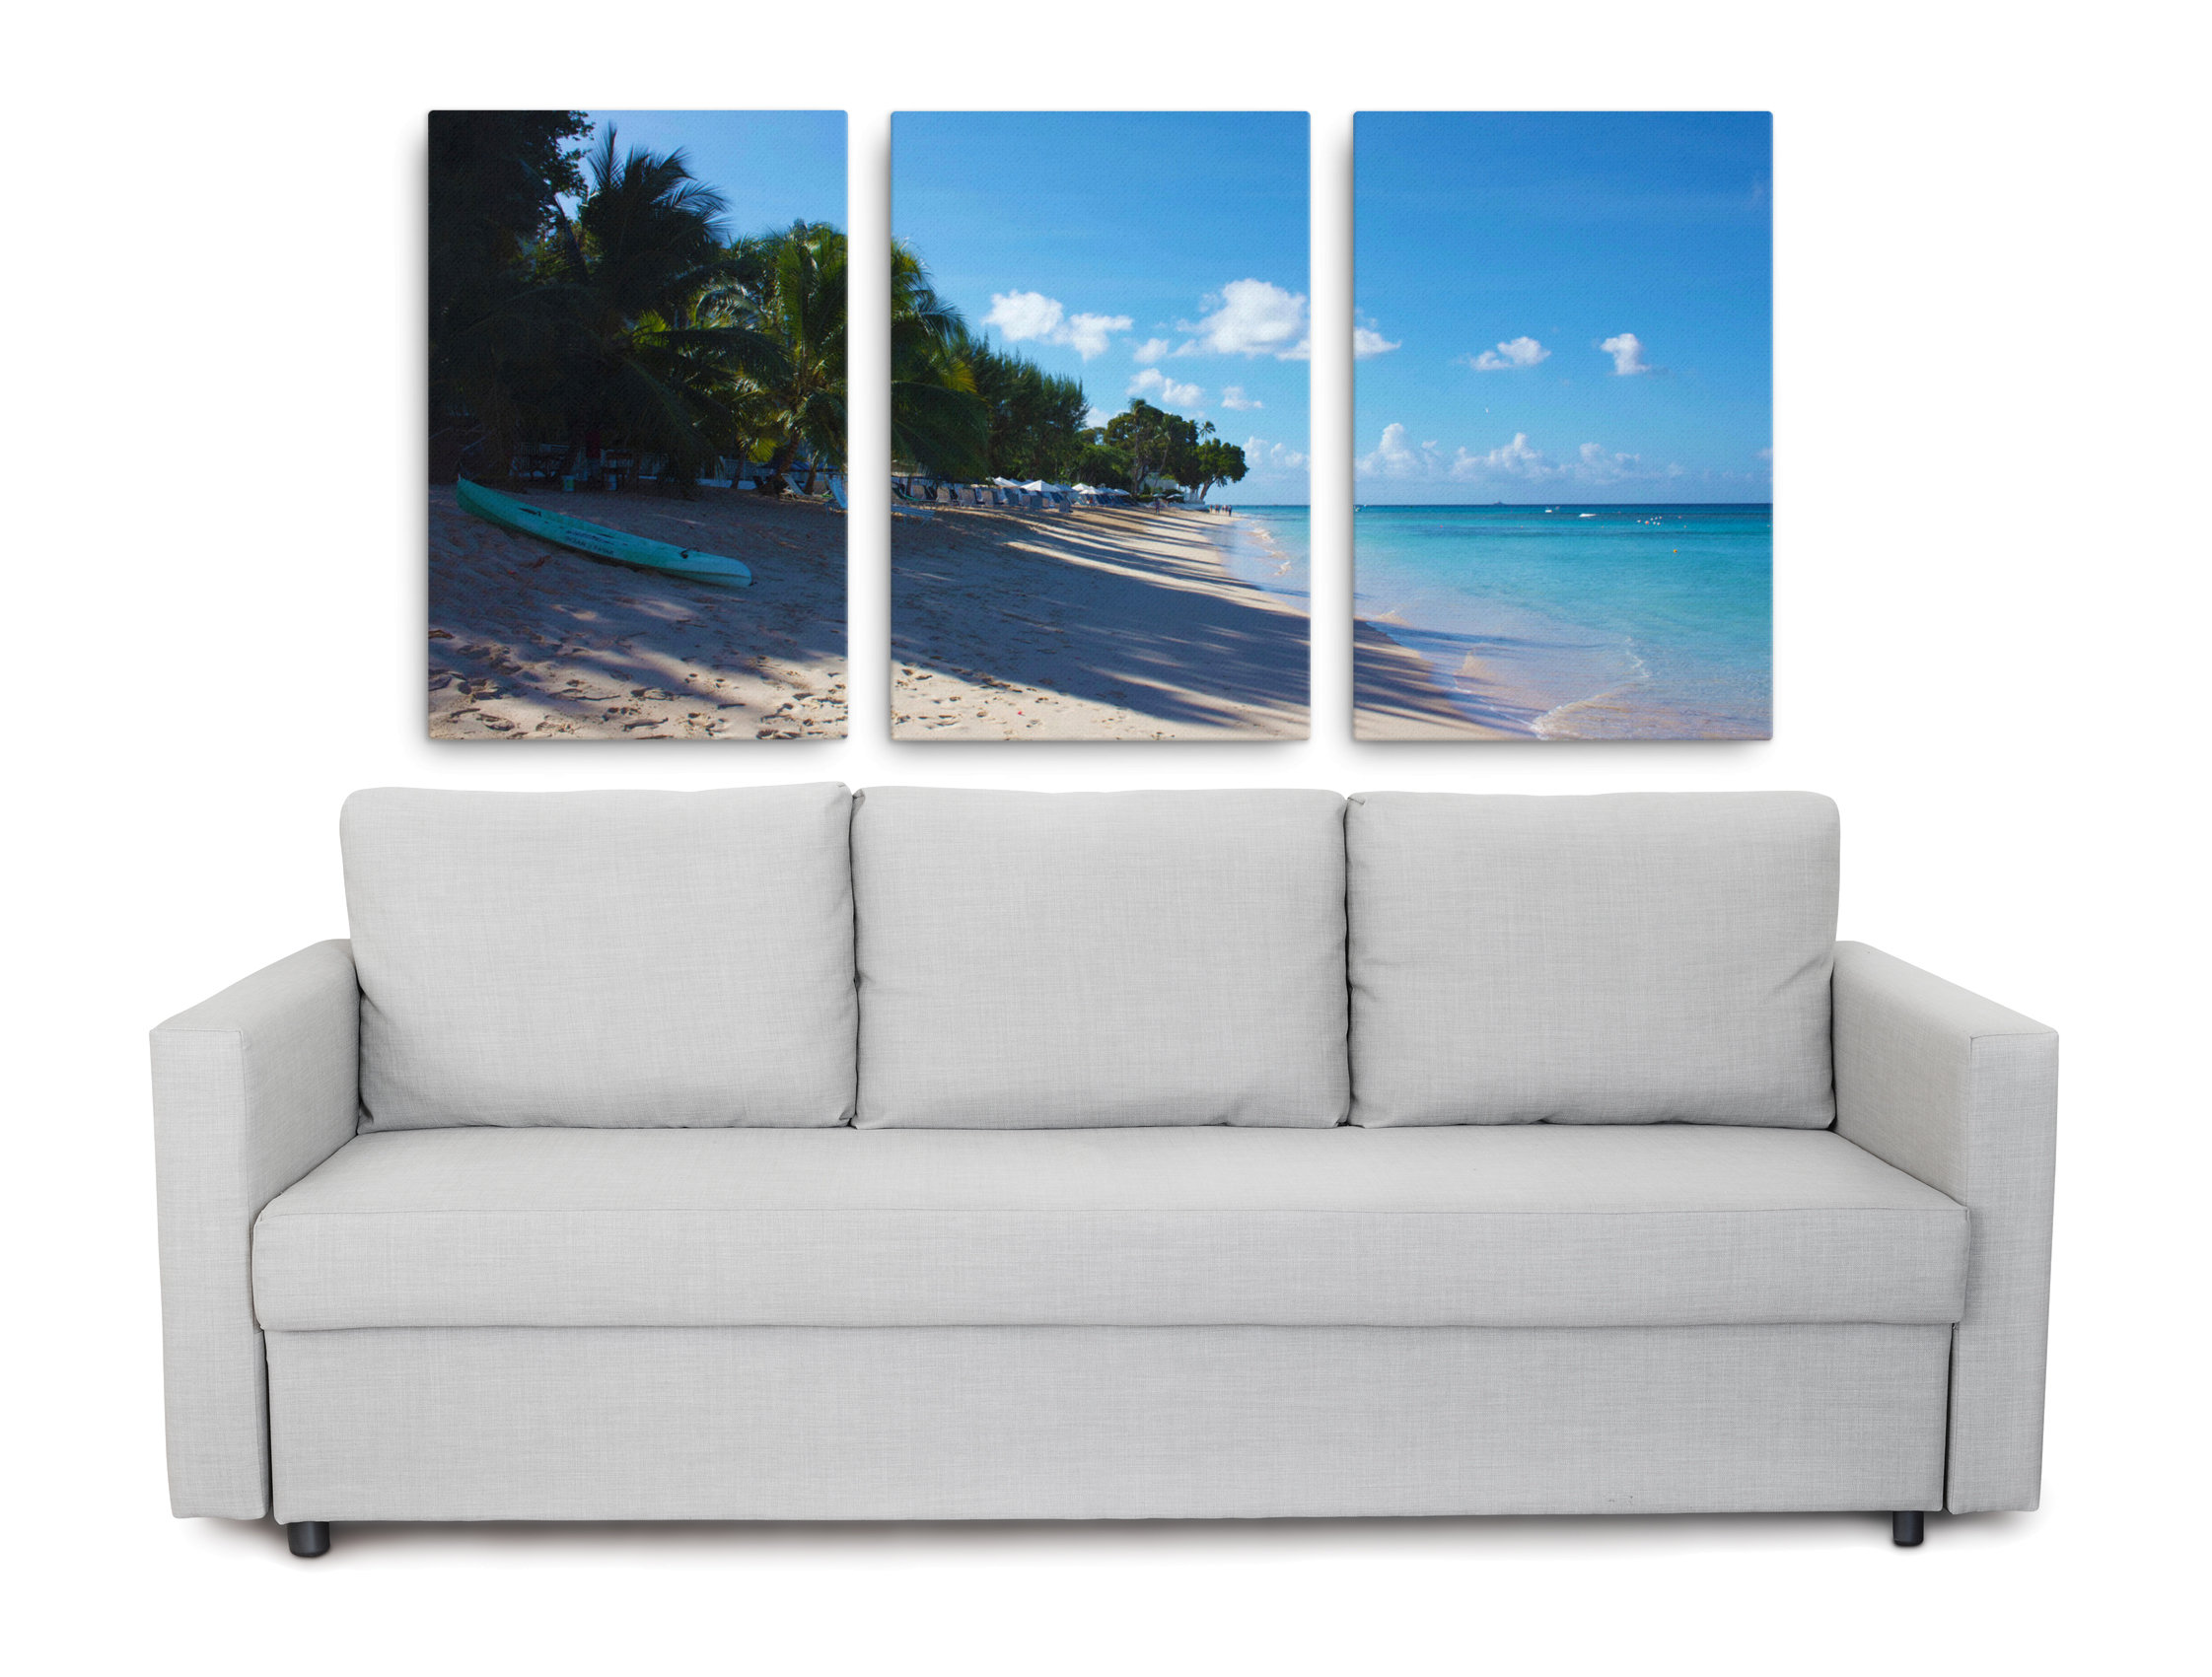 Product picture of a Caribbean beach wrapped canvas set